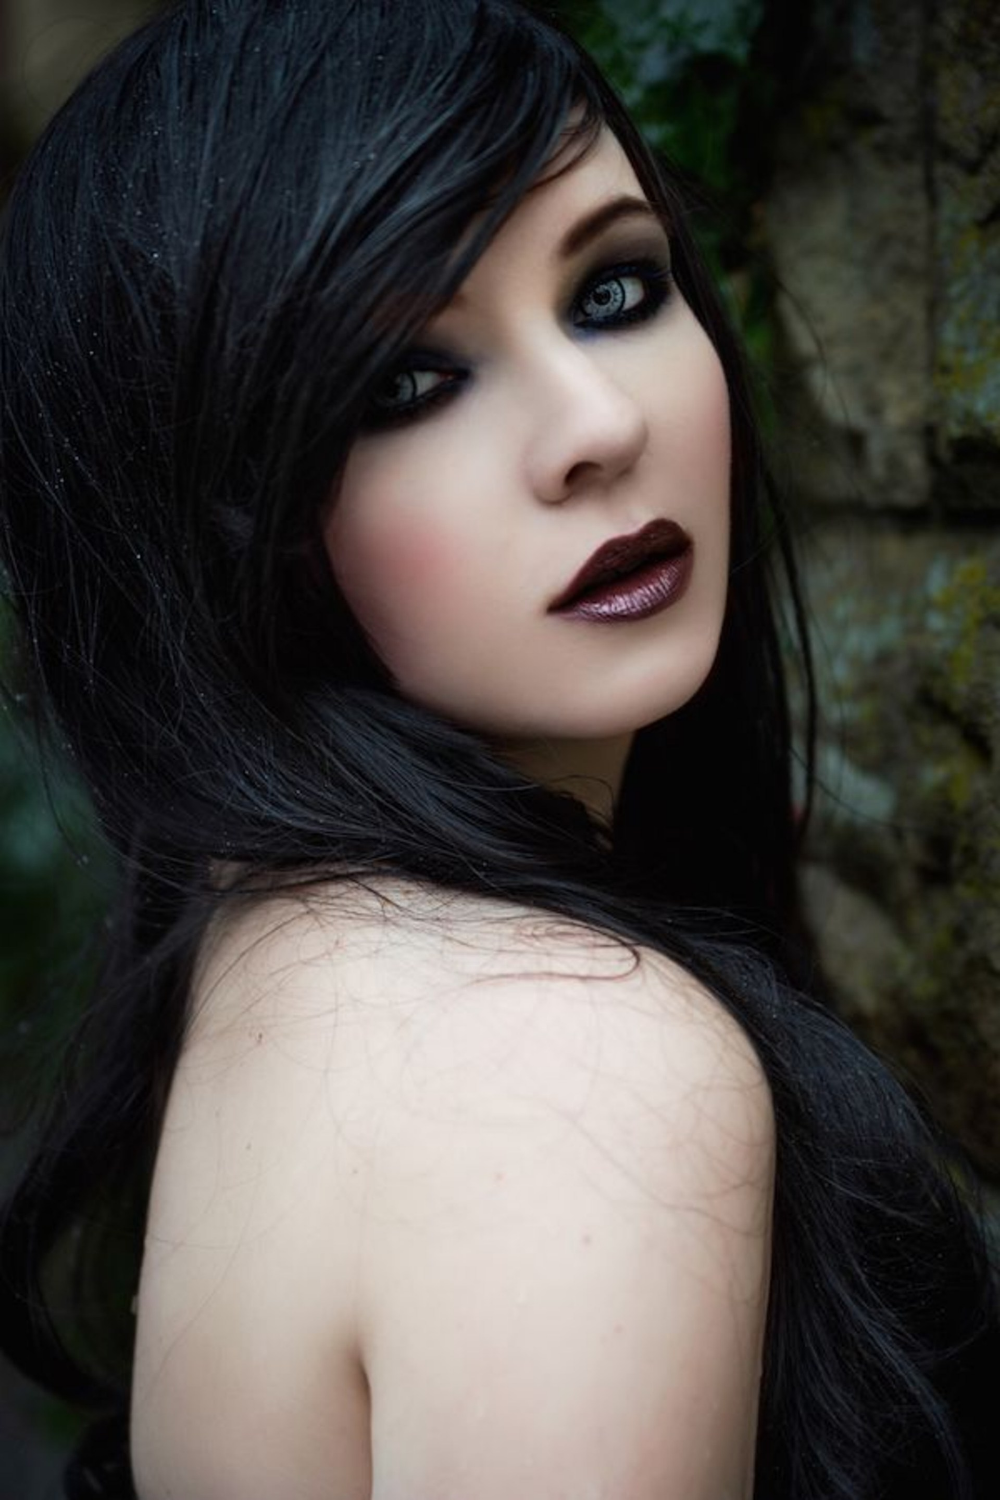 Pin by Ed Poe on Lipstick Traces Goth beauty, Gothic